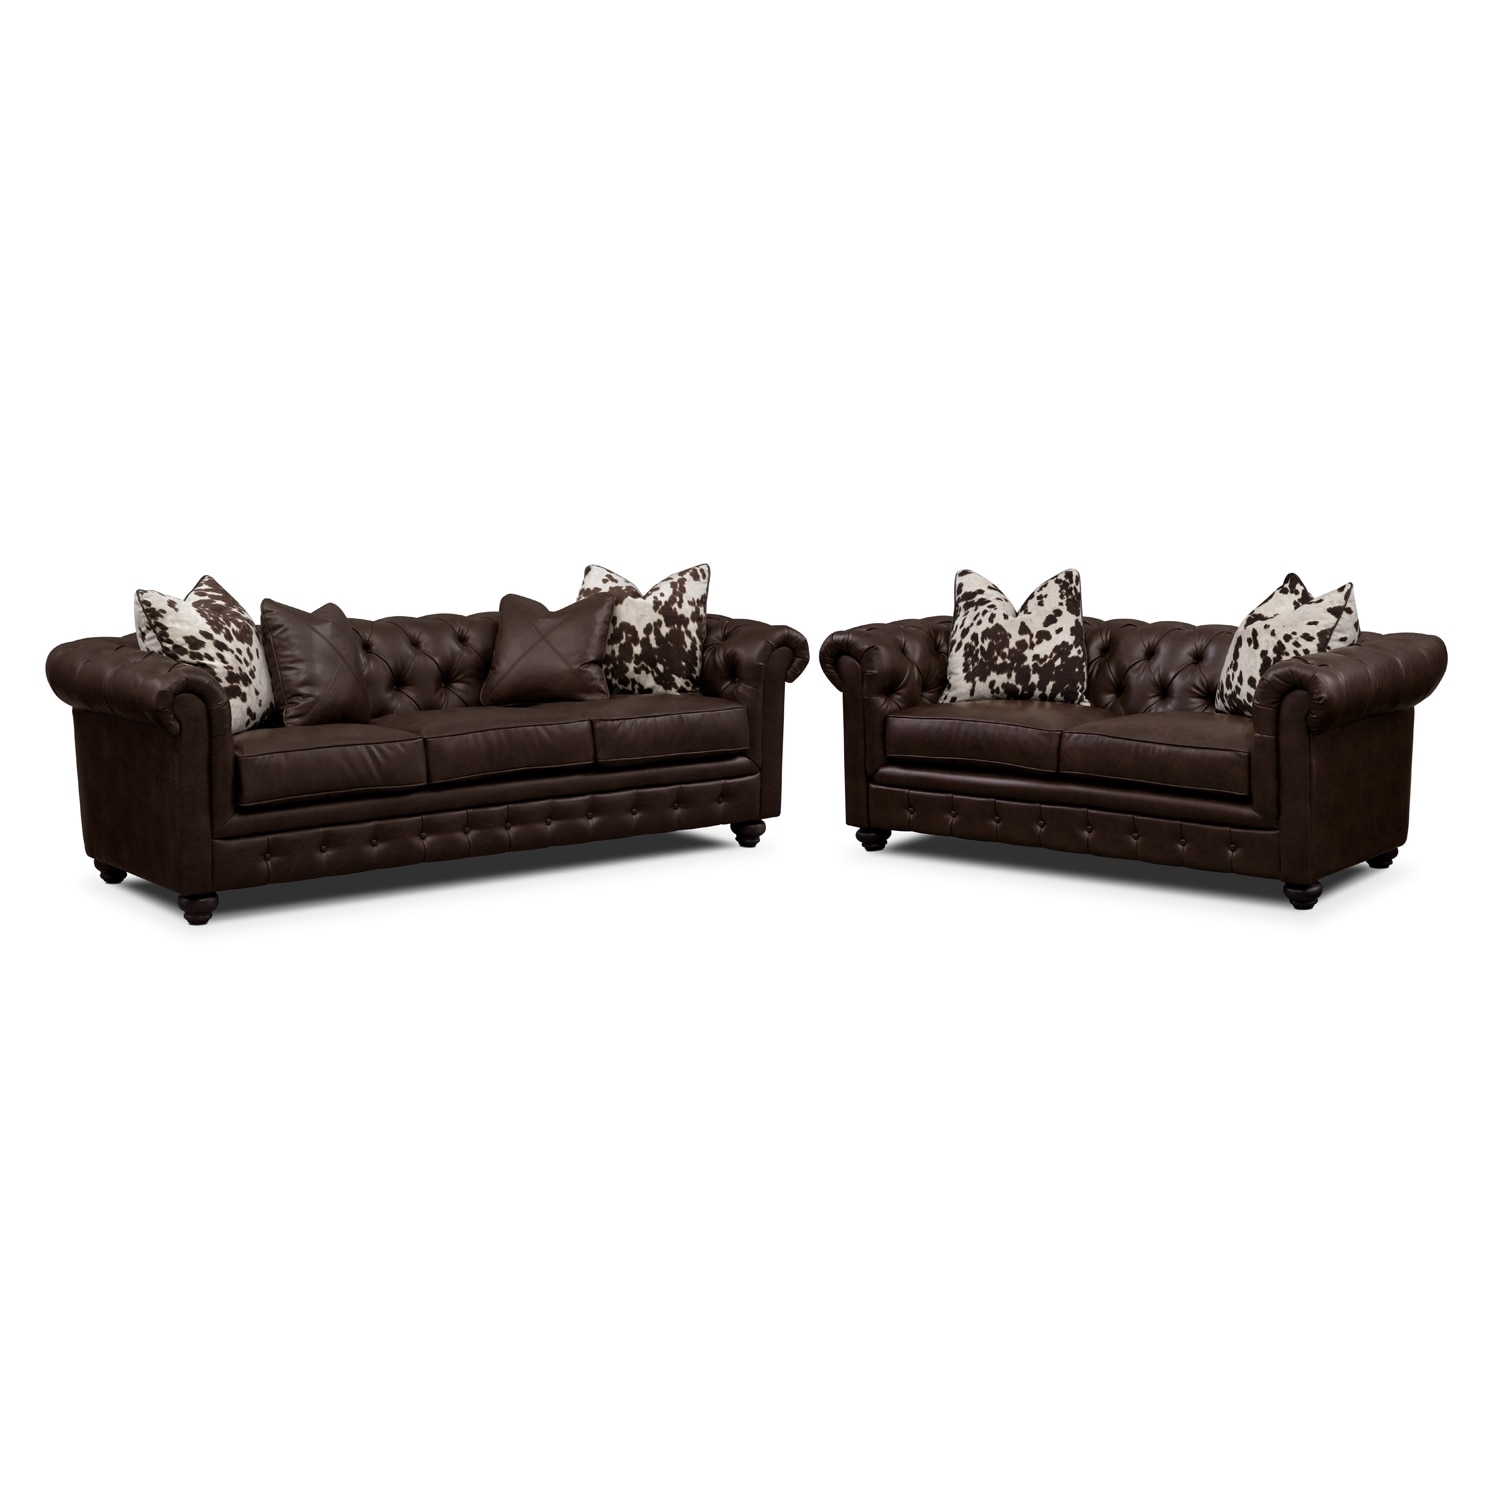 madeline chocolate 2 pc living room set value city